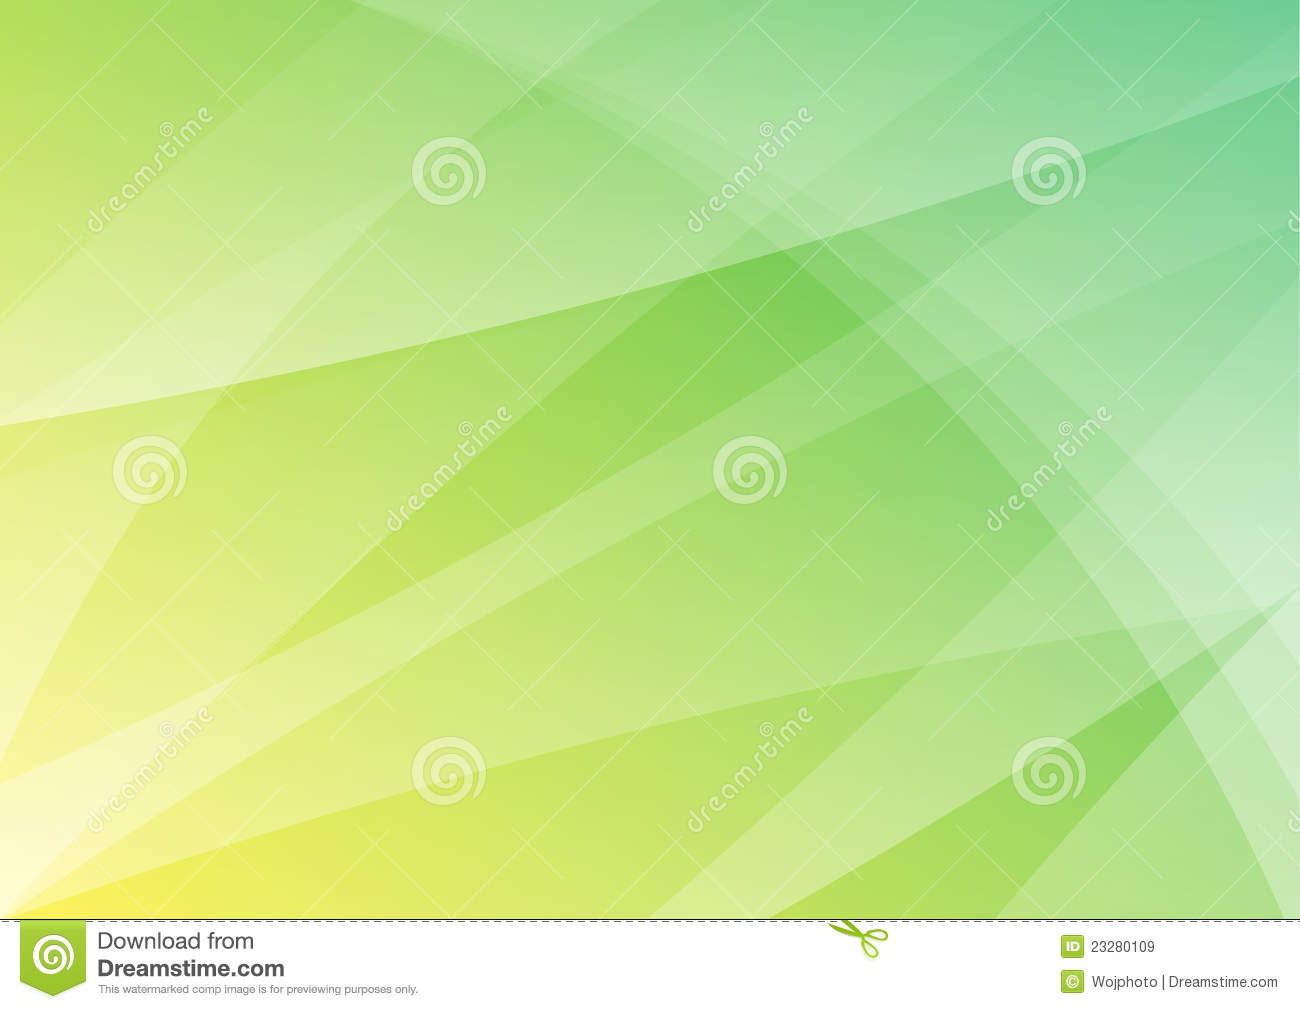 White Wave 3d Wallpaper Green And Yellow Abstract Background Wallpaper Stock